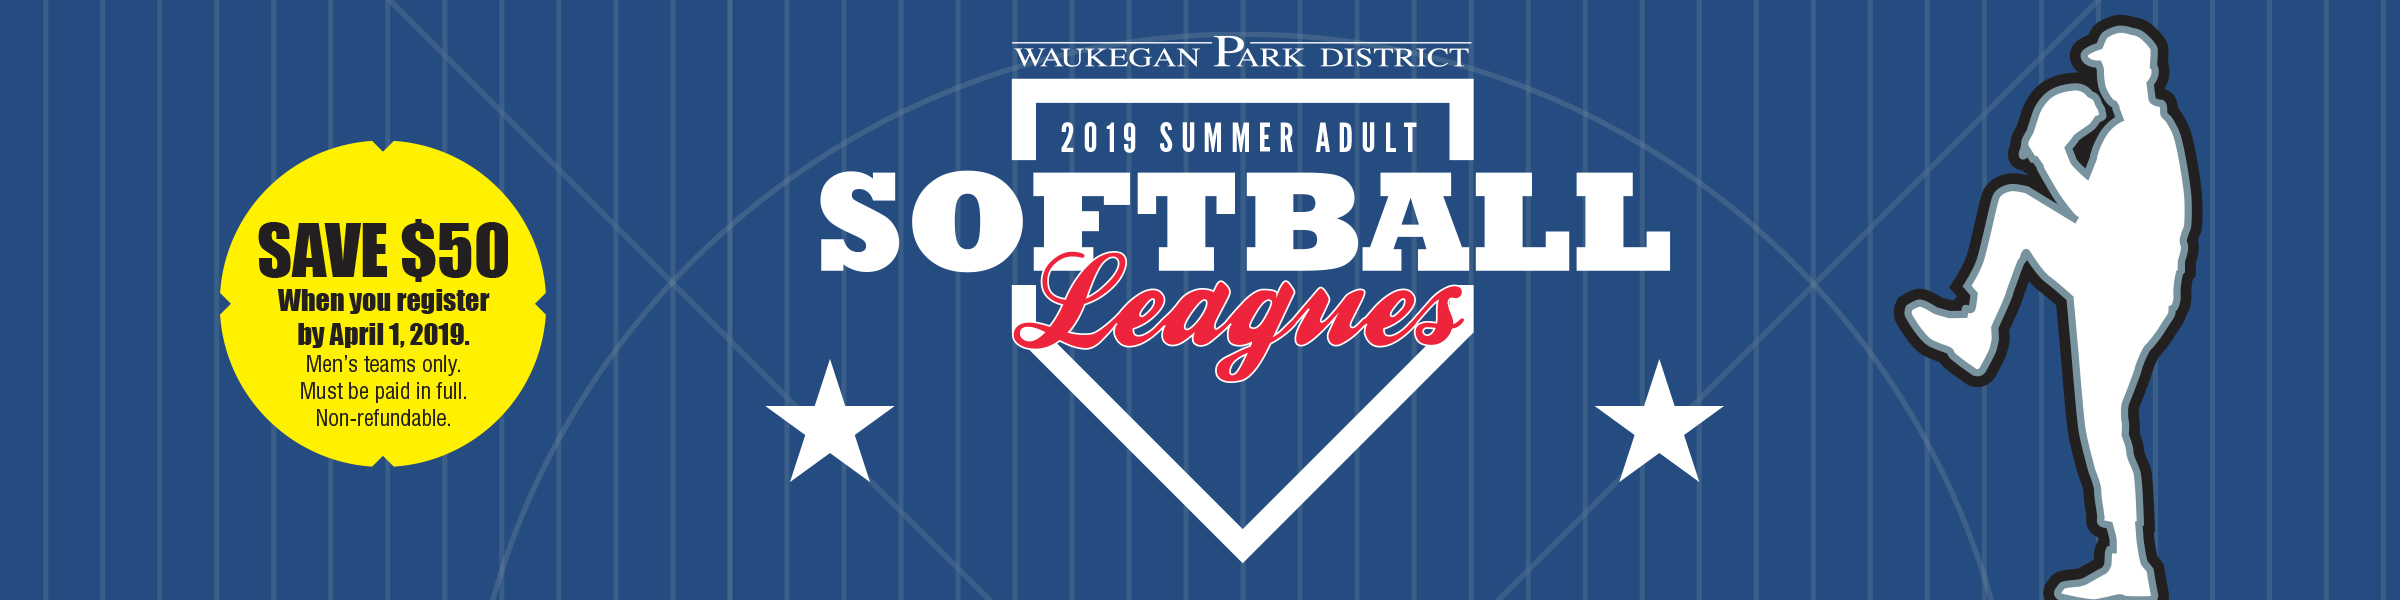 2019 Summer Adult Softball Leagues